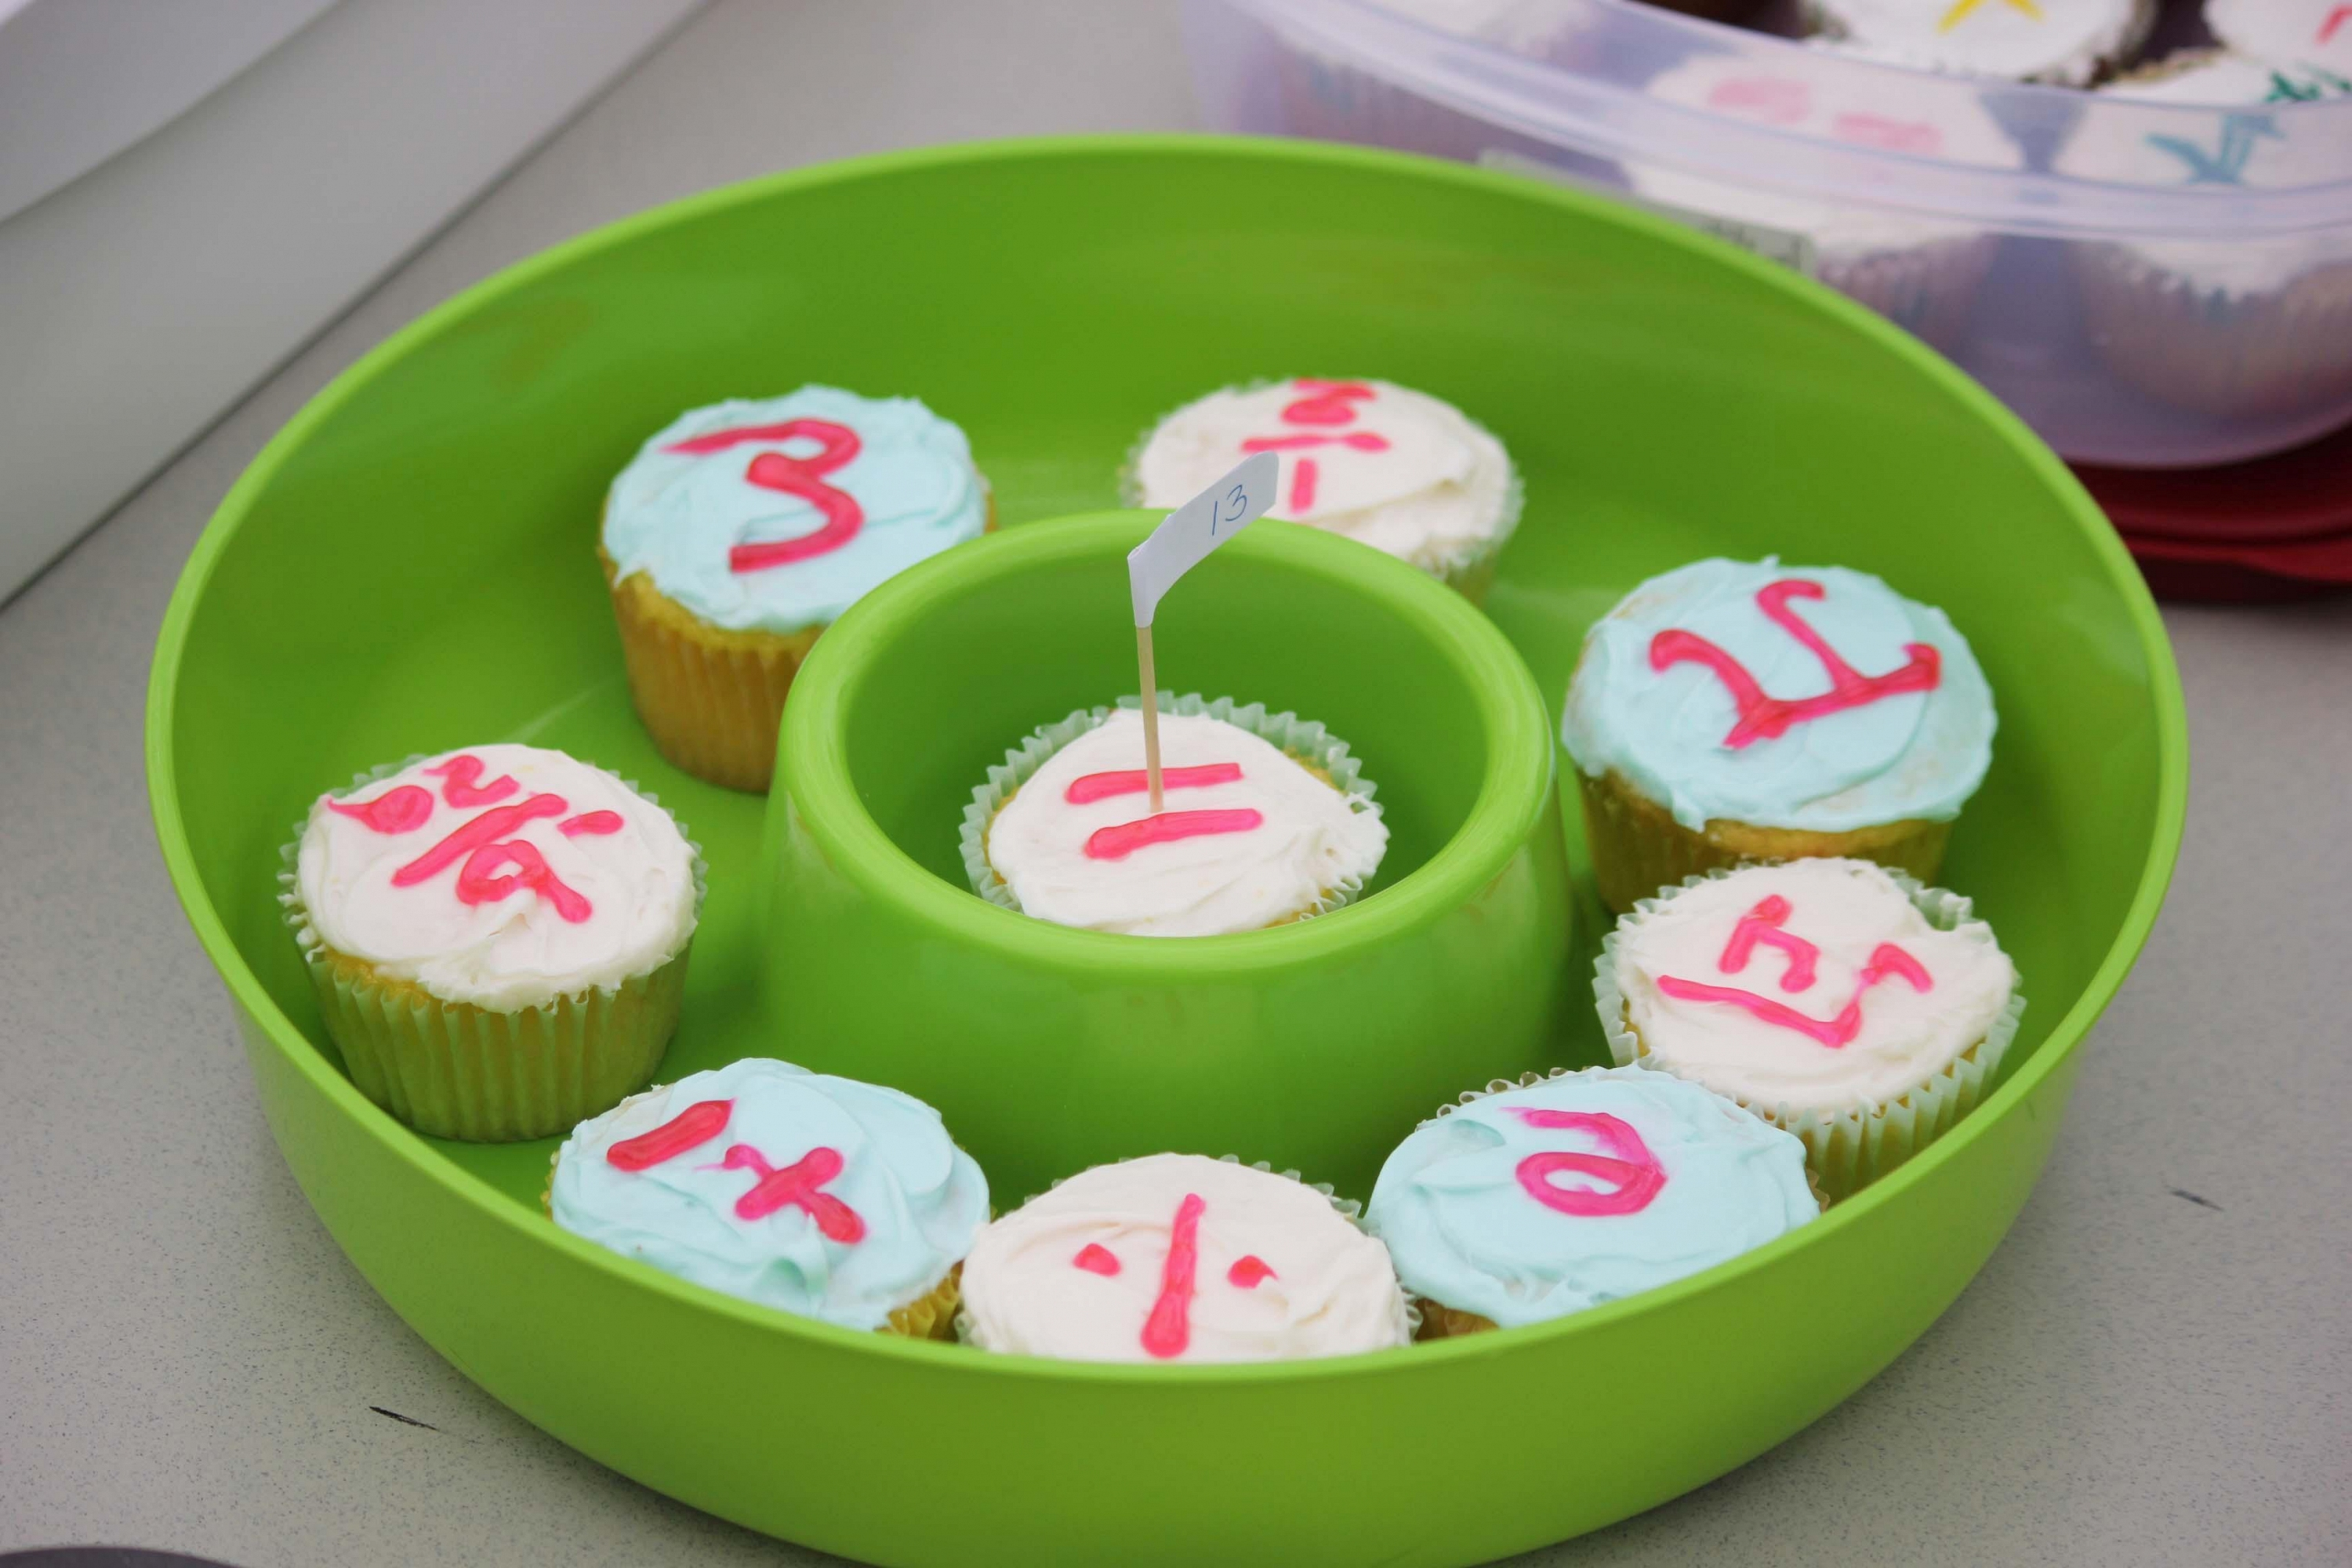 Picture of cupcakes submitted to the baking contest.  The baking contest was part of Math Week 2014.